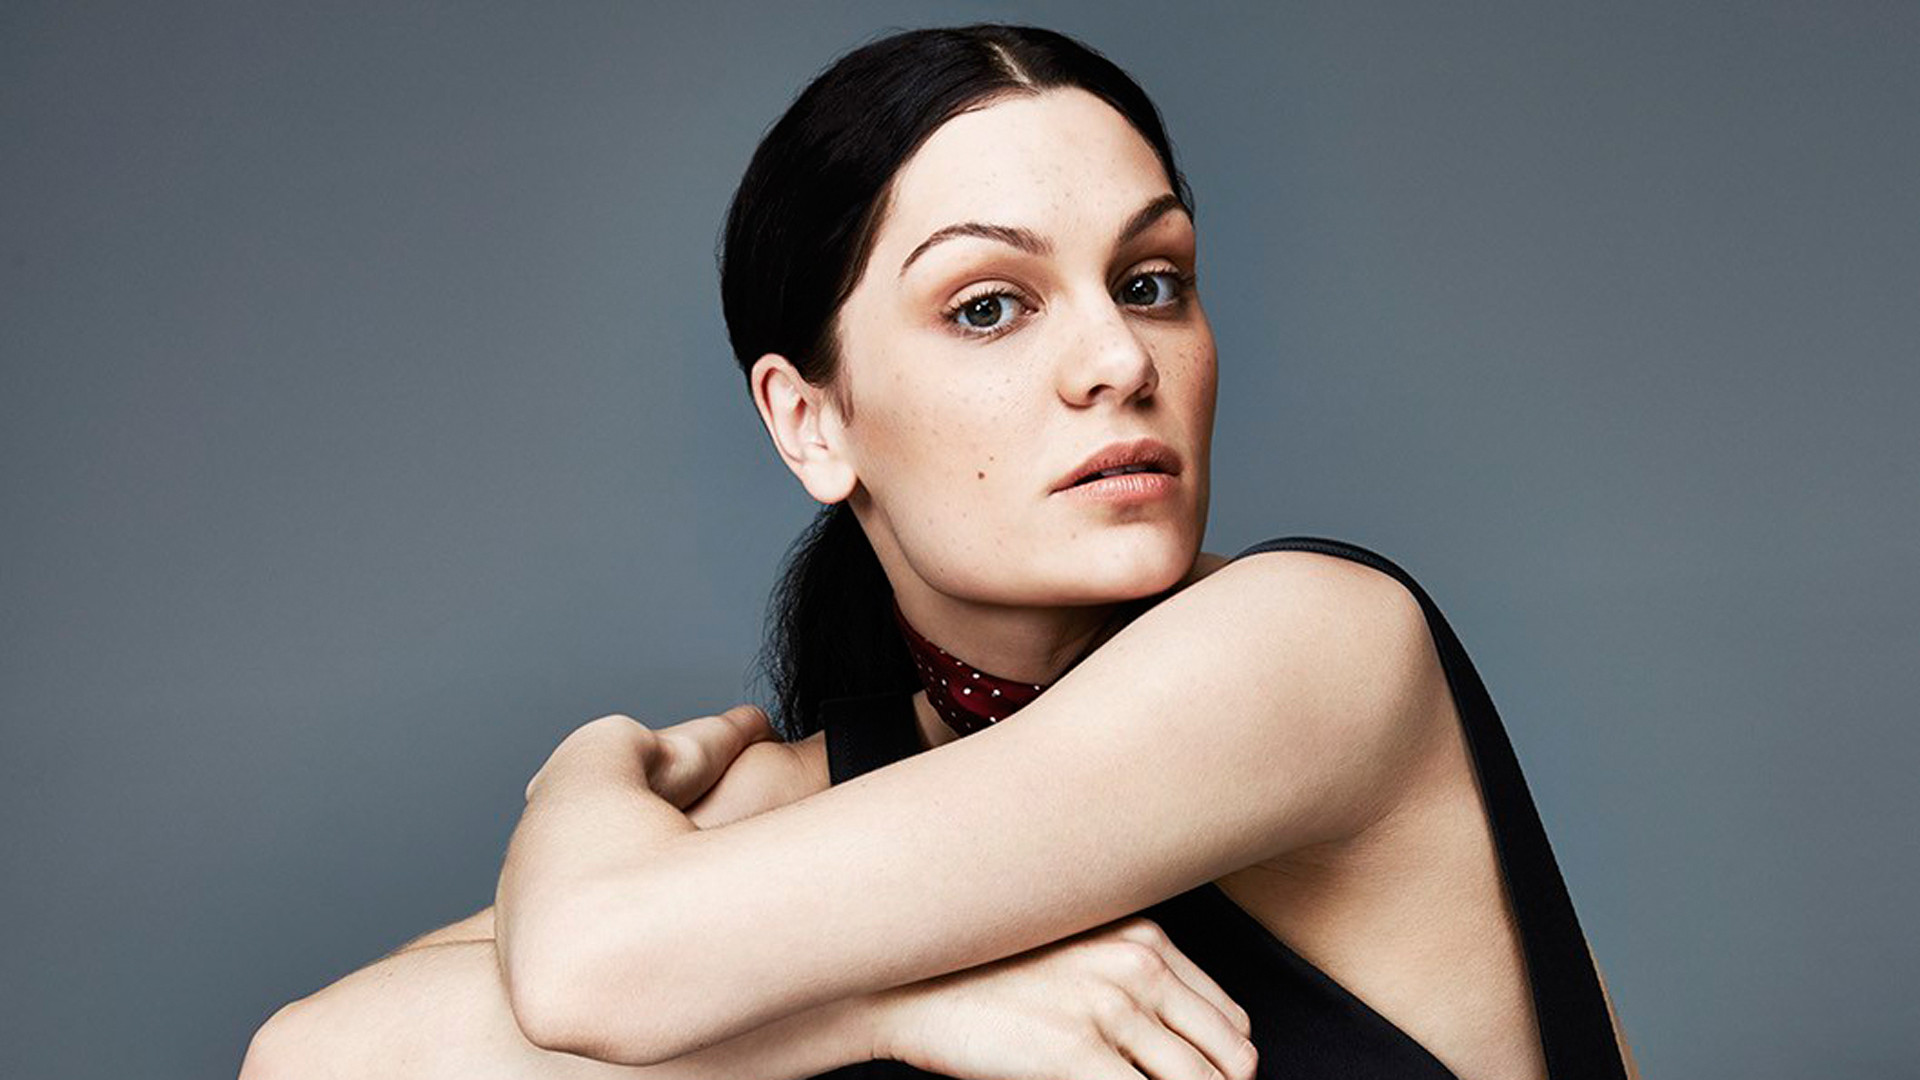 1920x1080 ... Jessie J High Resolution Background Wallpapers |  Background  Pictures ...